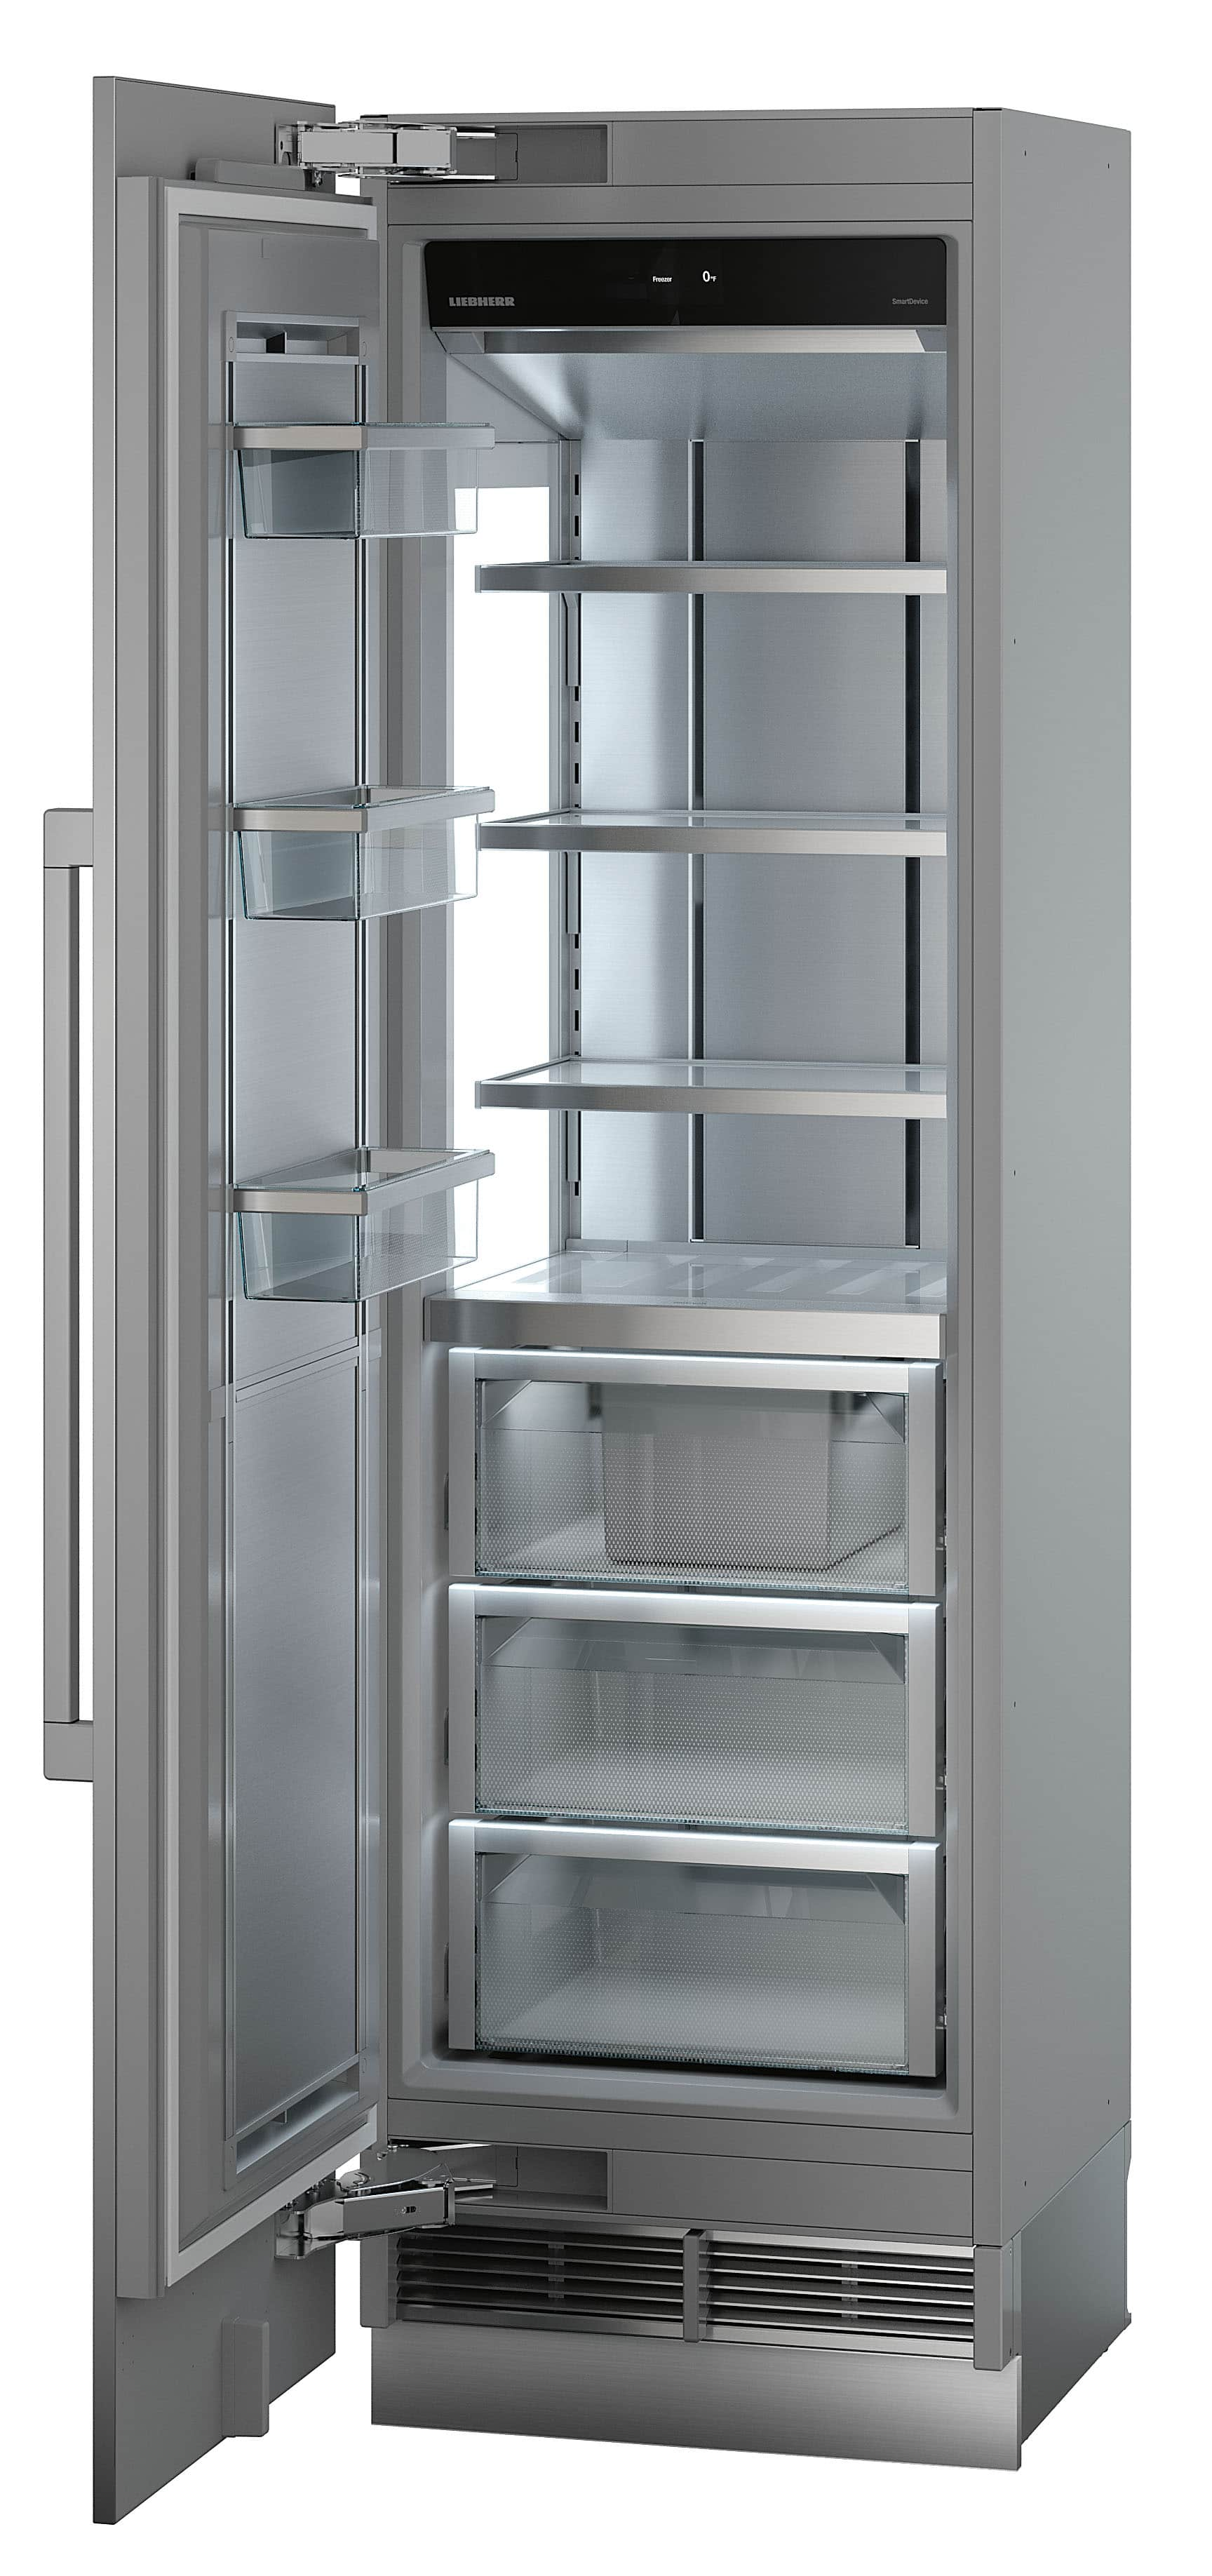 liebherr_mf2451_freezer